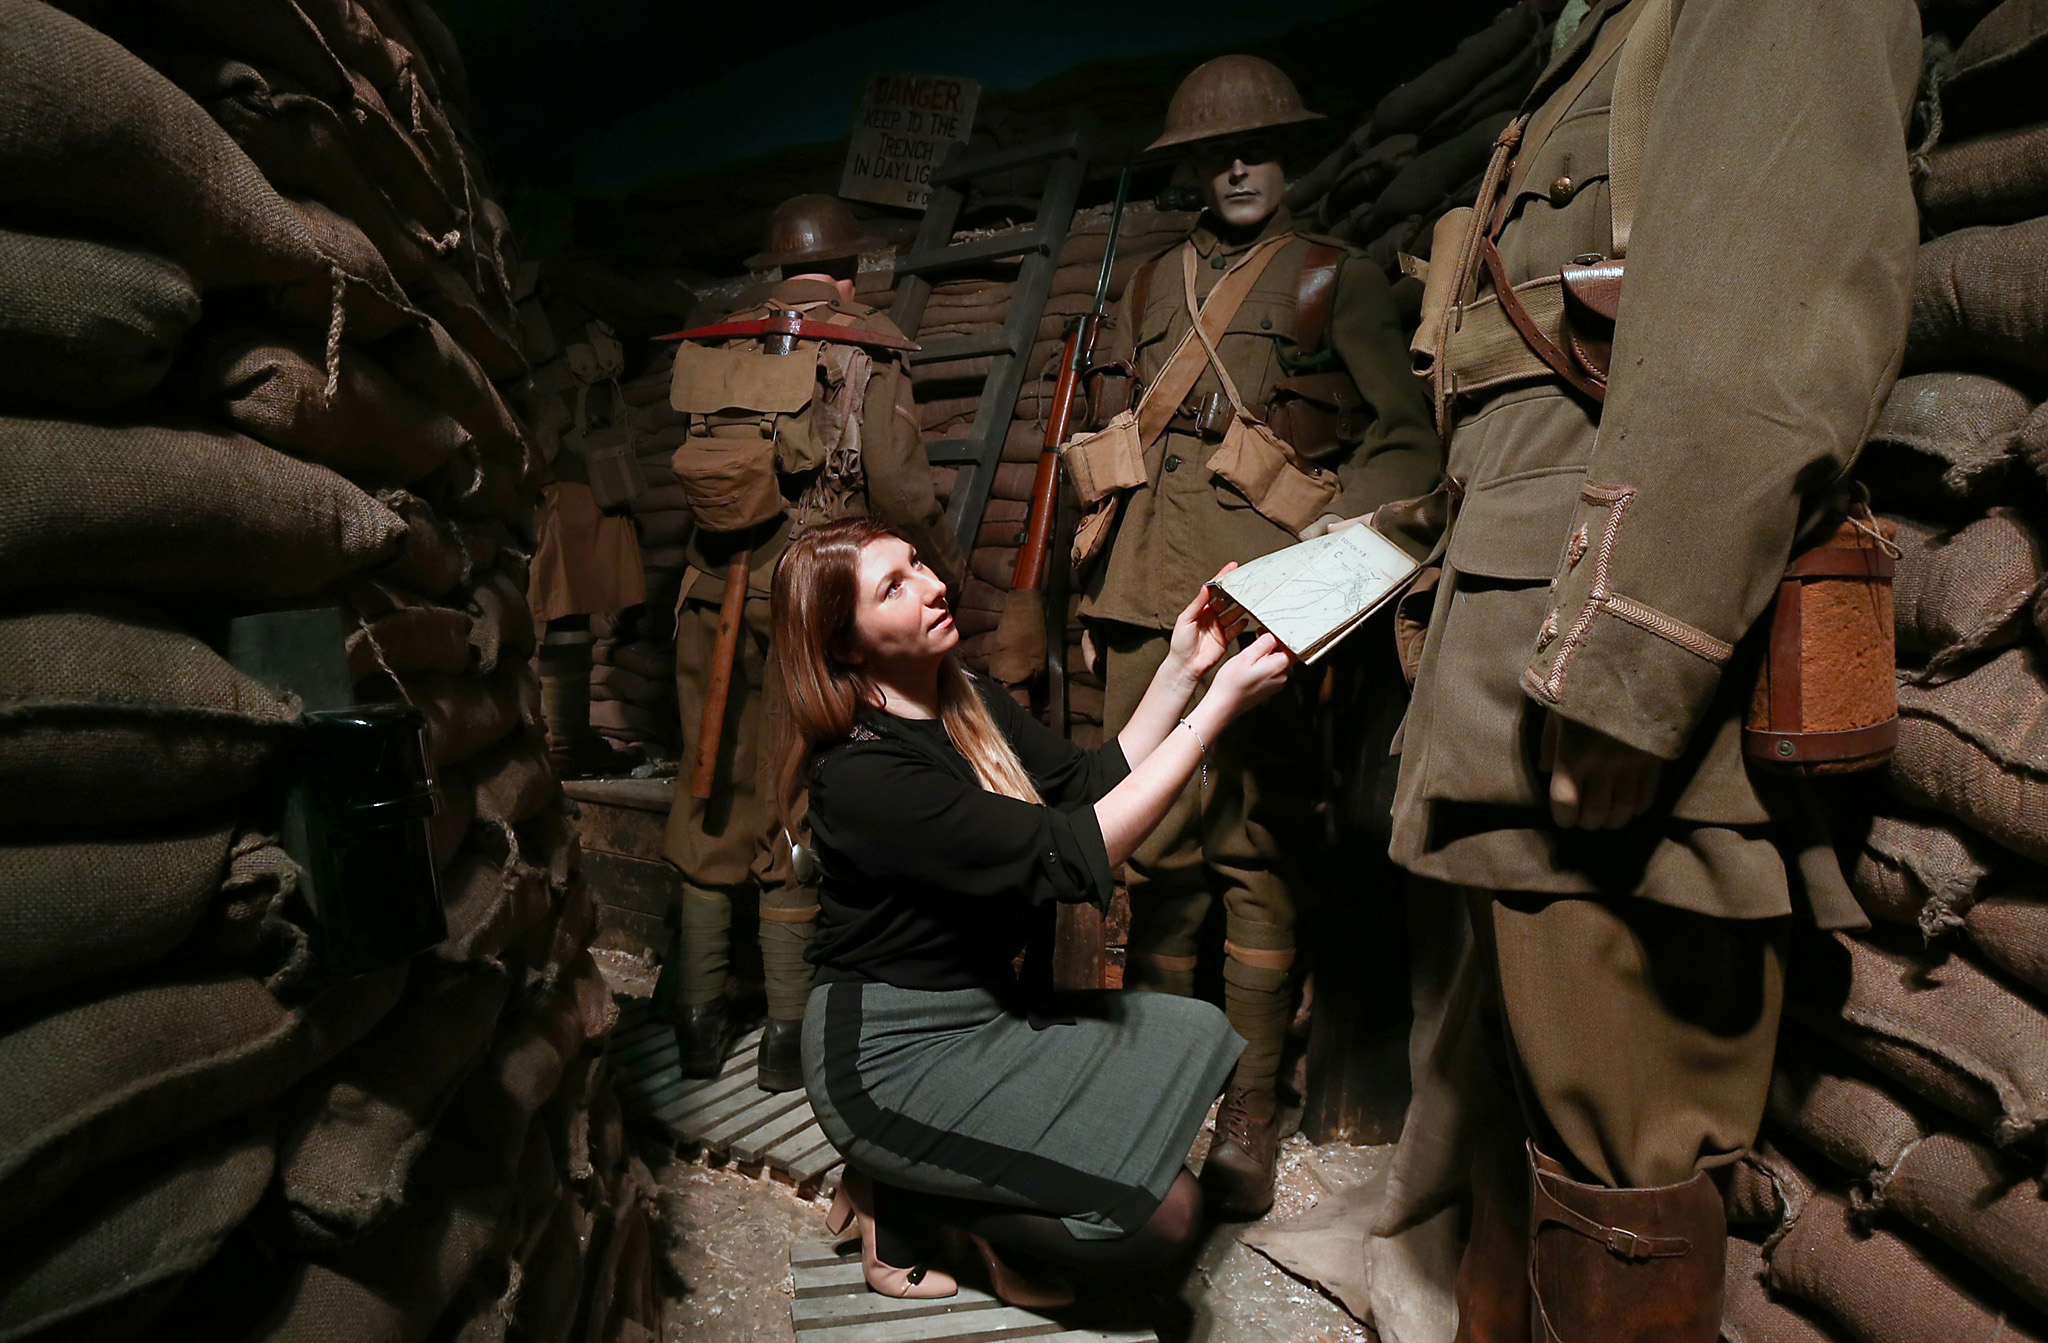 "***BESTPIX*** Preview Of Remembering 1916 - Life on the Western Front Exhibition...CROYDON, ENGLAND - MARCH 08:  A member of staff poses next to British World War One soldiers in a recreated trench during a press preview for the ""Remembering 1916 - Life on the Western Front"" exhibition at Whitgift School on March 8, 2016 in Croydon, England. The exhibition presents 1916 and the First World War as seen by Britain, France and Germany and will run from March 12 to August 31 2016.  (Photo by Carl Court/Getty Images) ***BESTPIX***"